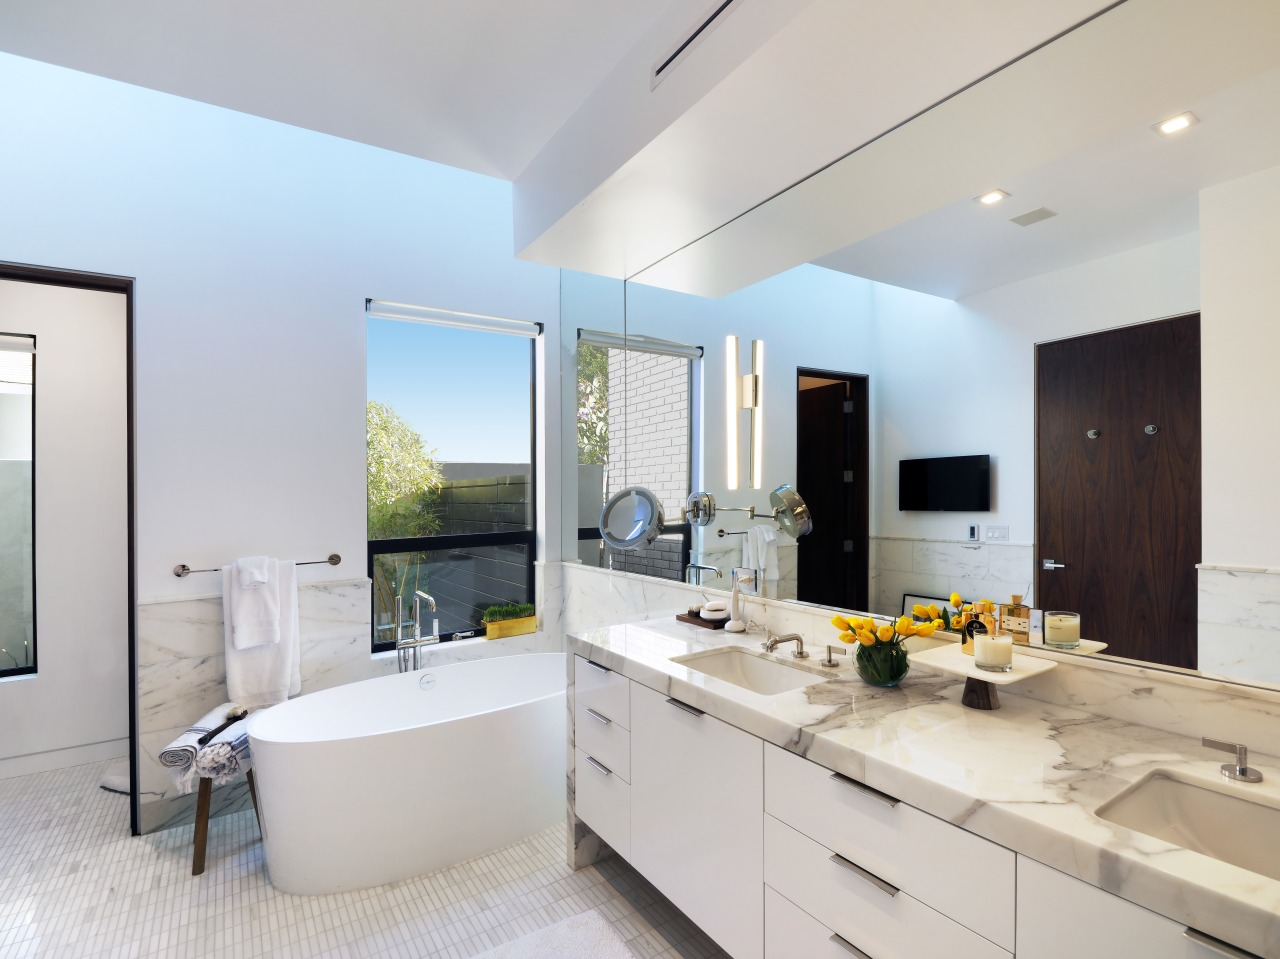 Natural light streams into this new master ensuite architecture, countertop, interior design, kitchen, real estate, room, gray